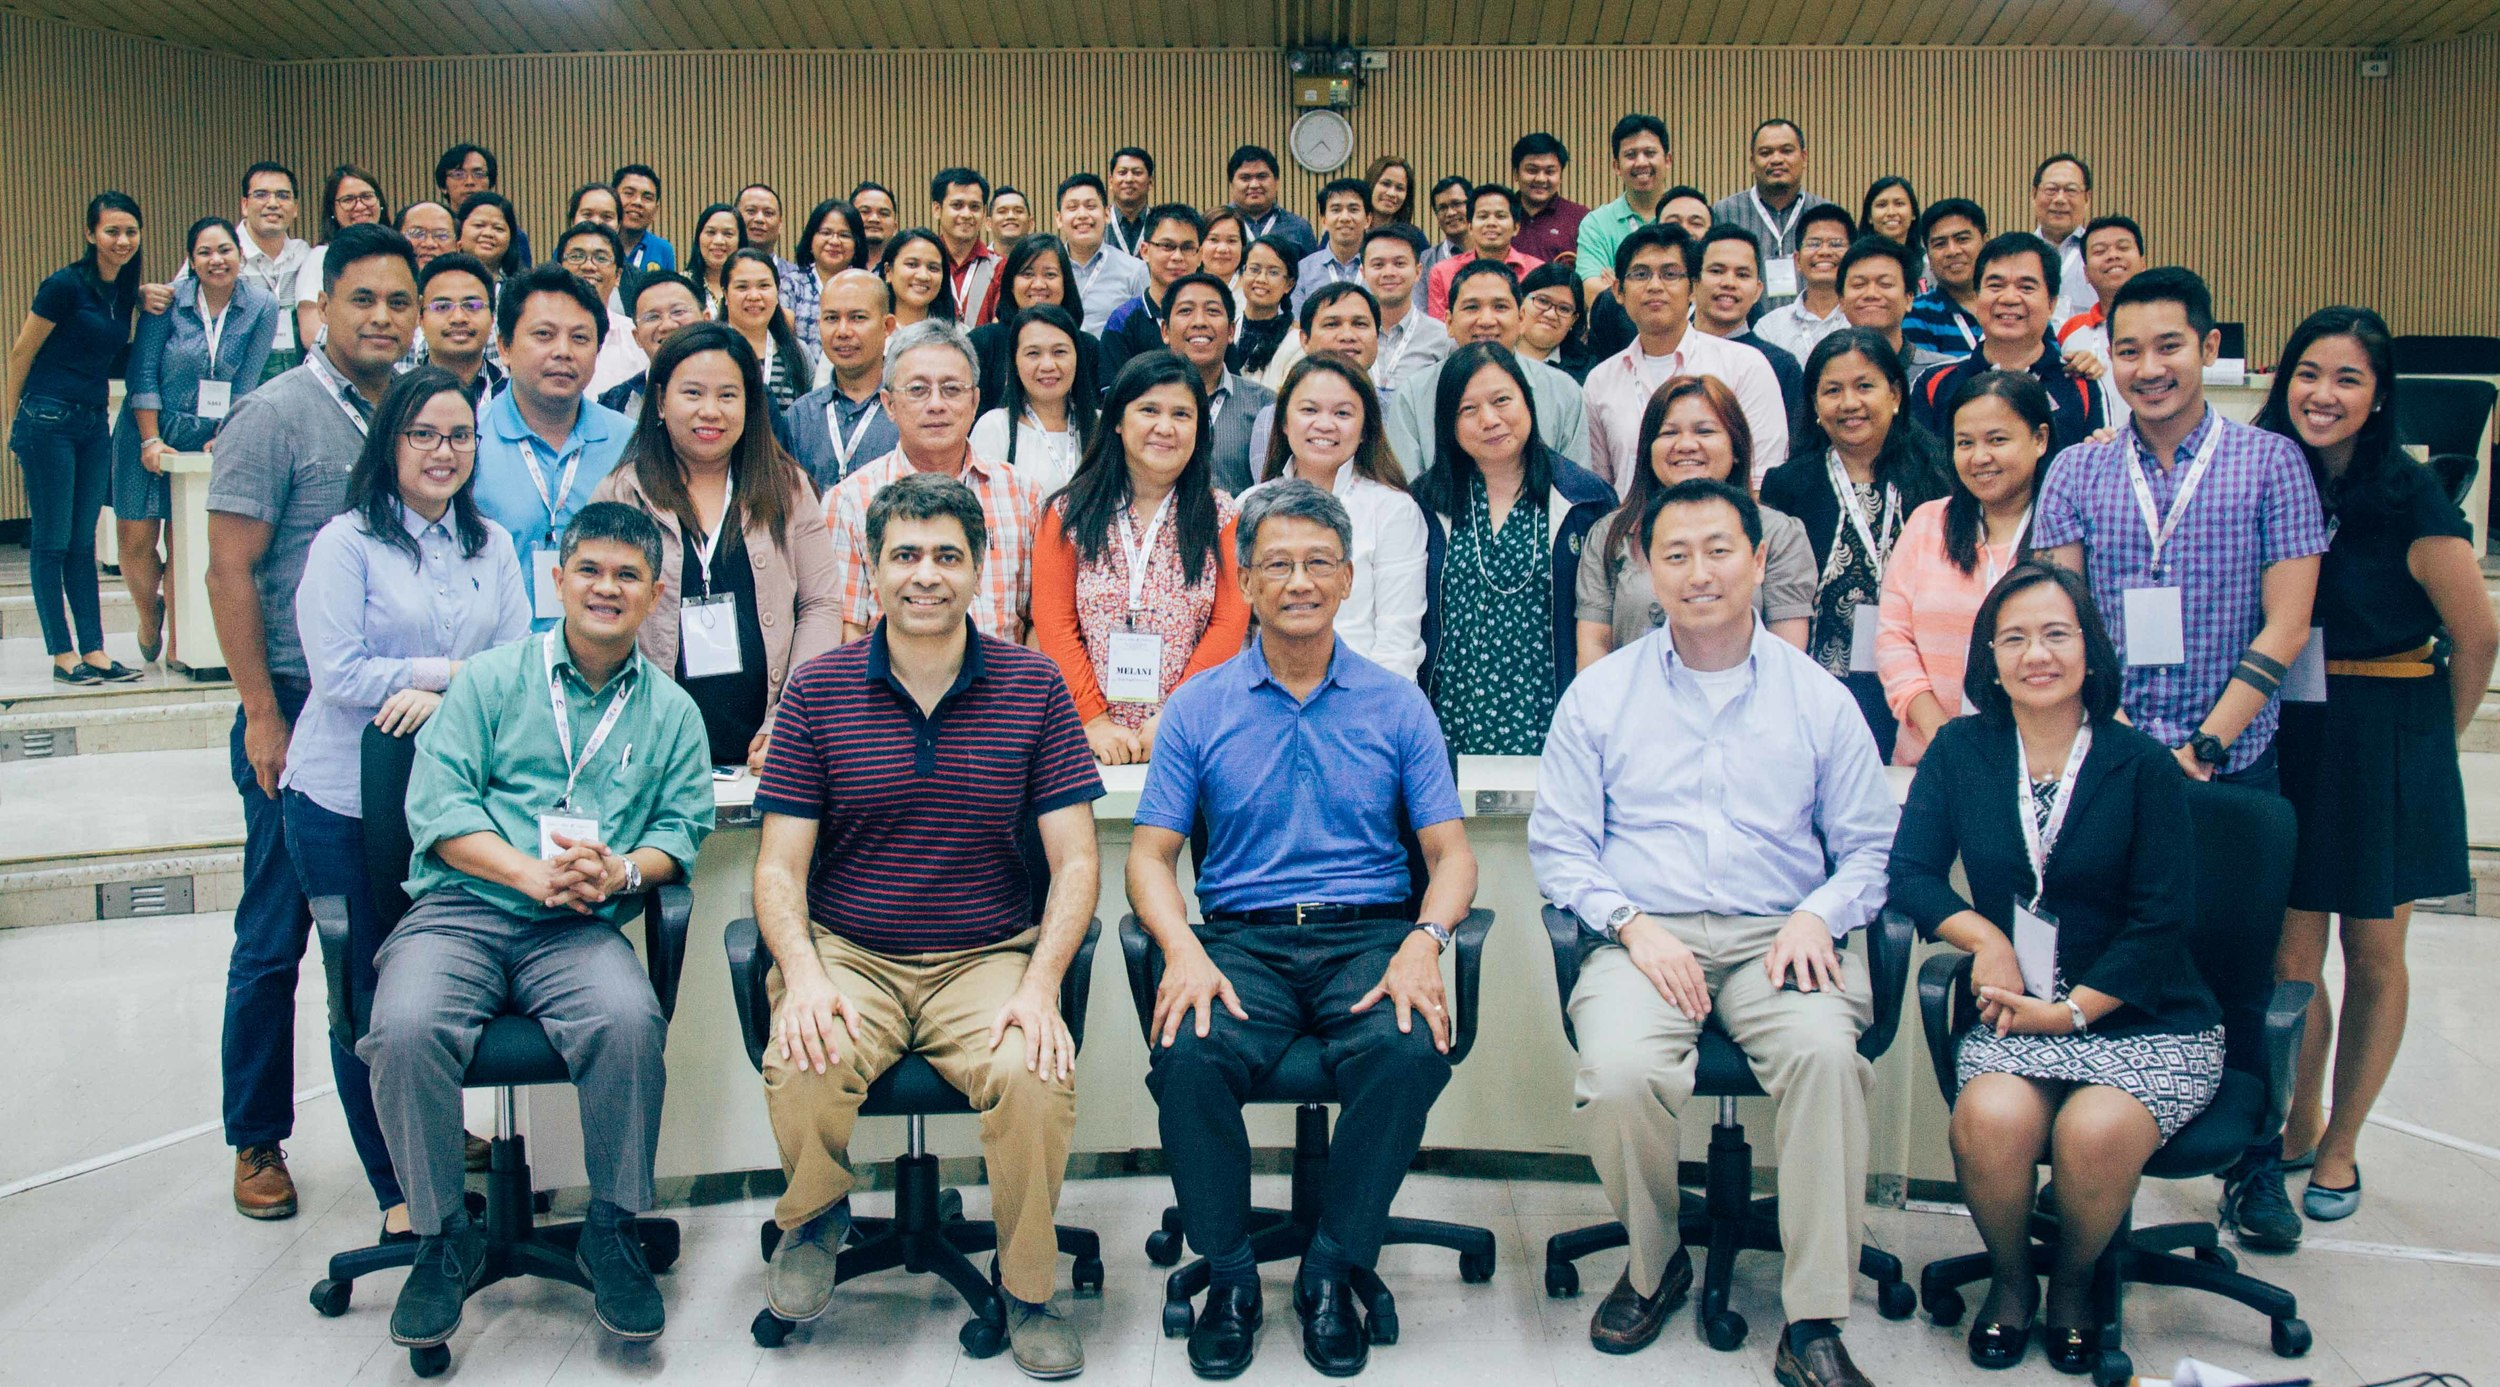 Participants, lecturers, and organizers pose for a group photo at the end of the successful bootcamp.